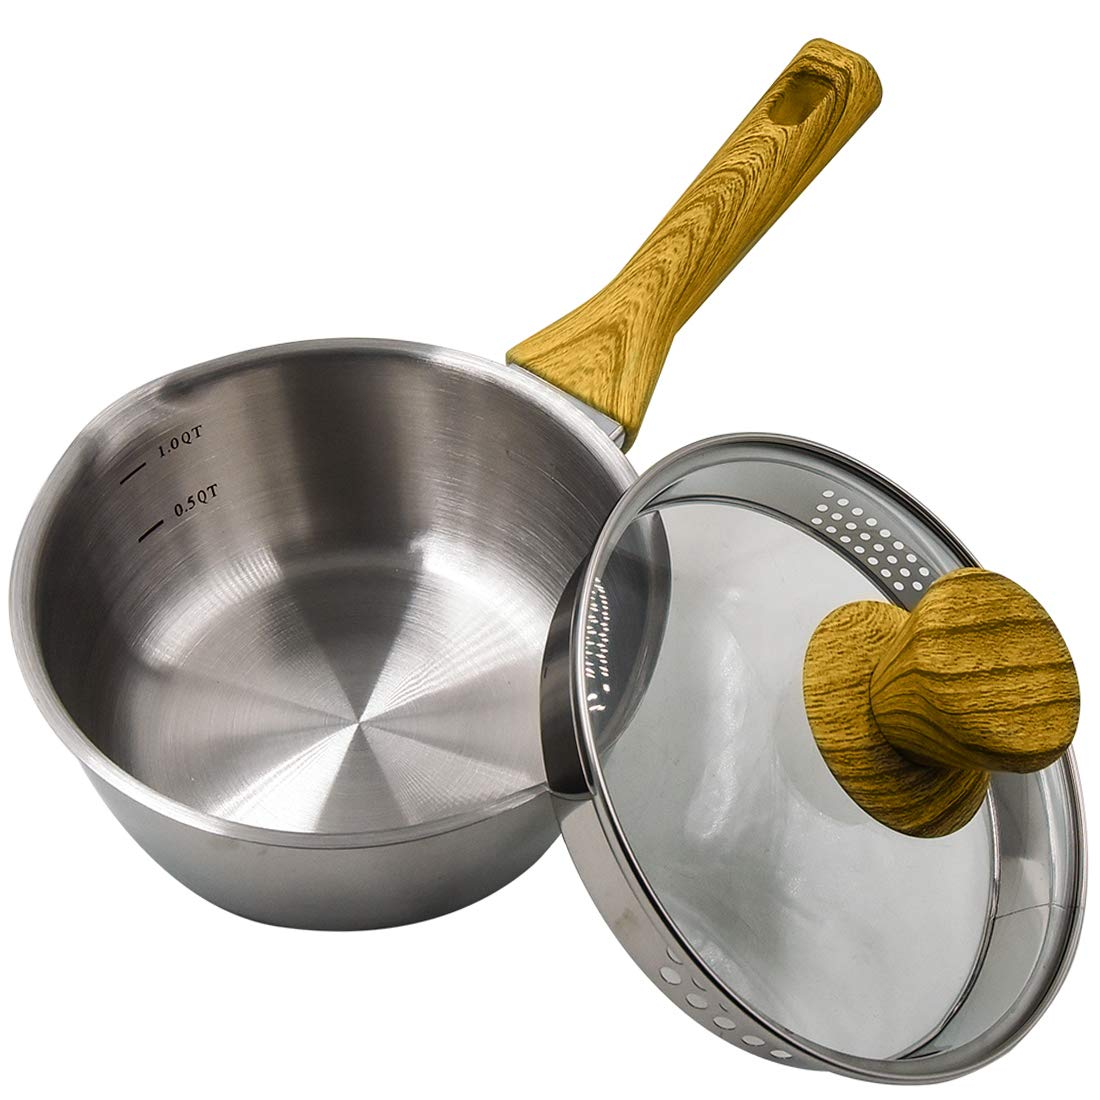 Momscook 1.5-Quart Saucepan Stainless Steel Tri-Ply Bonded Saucepan with Glass Lid, Strainer Lid Cookware,Bakelite Handle with Wooden Soft Touch - Dishwasher/Oven Safe